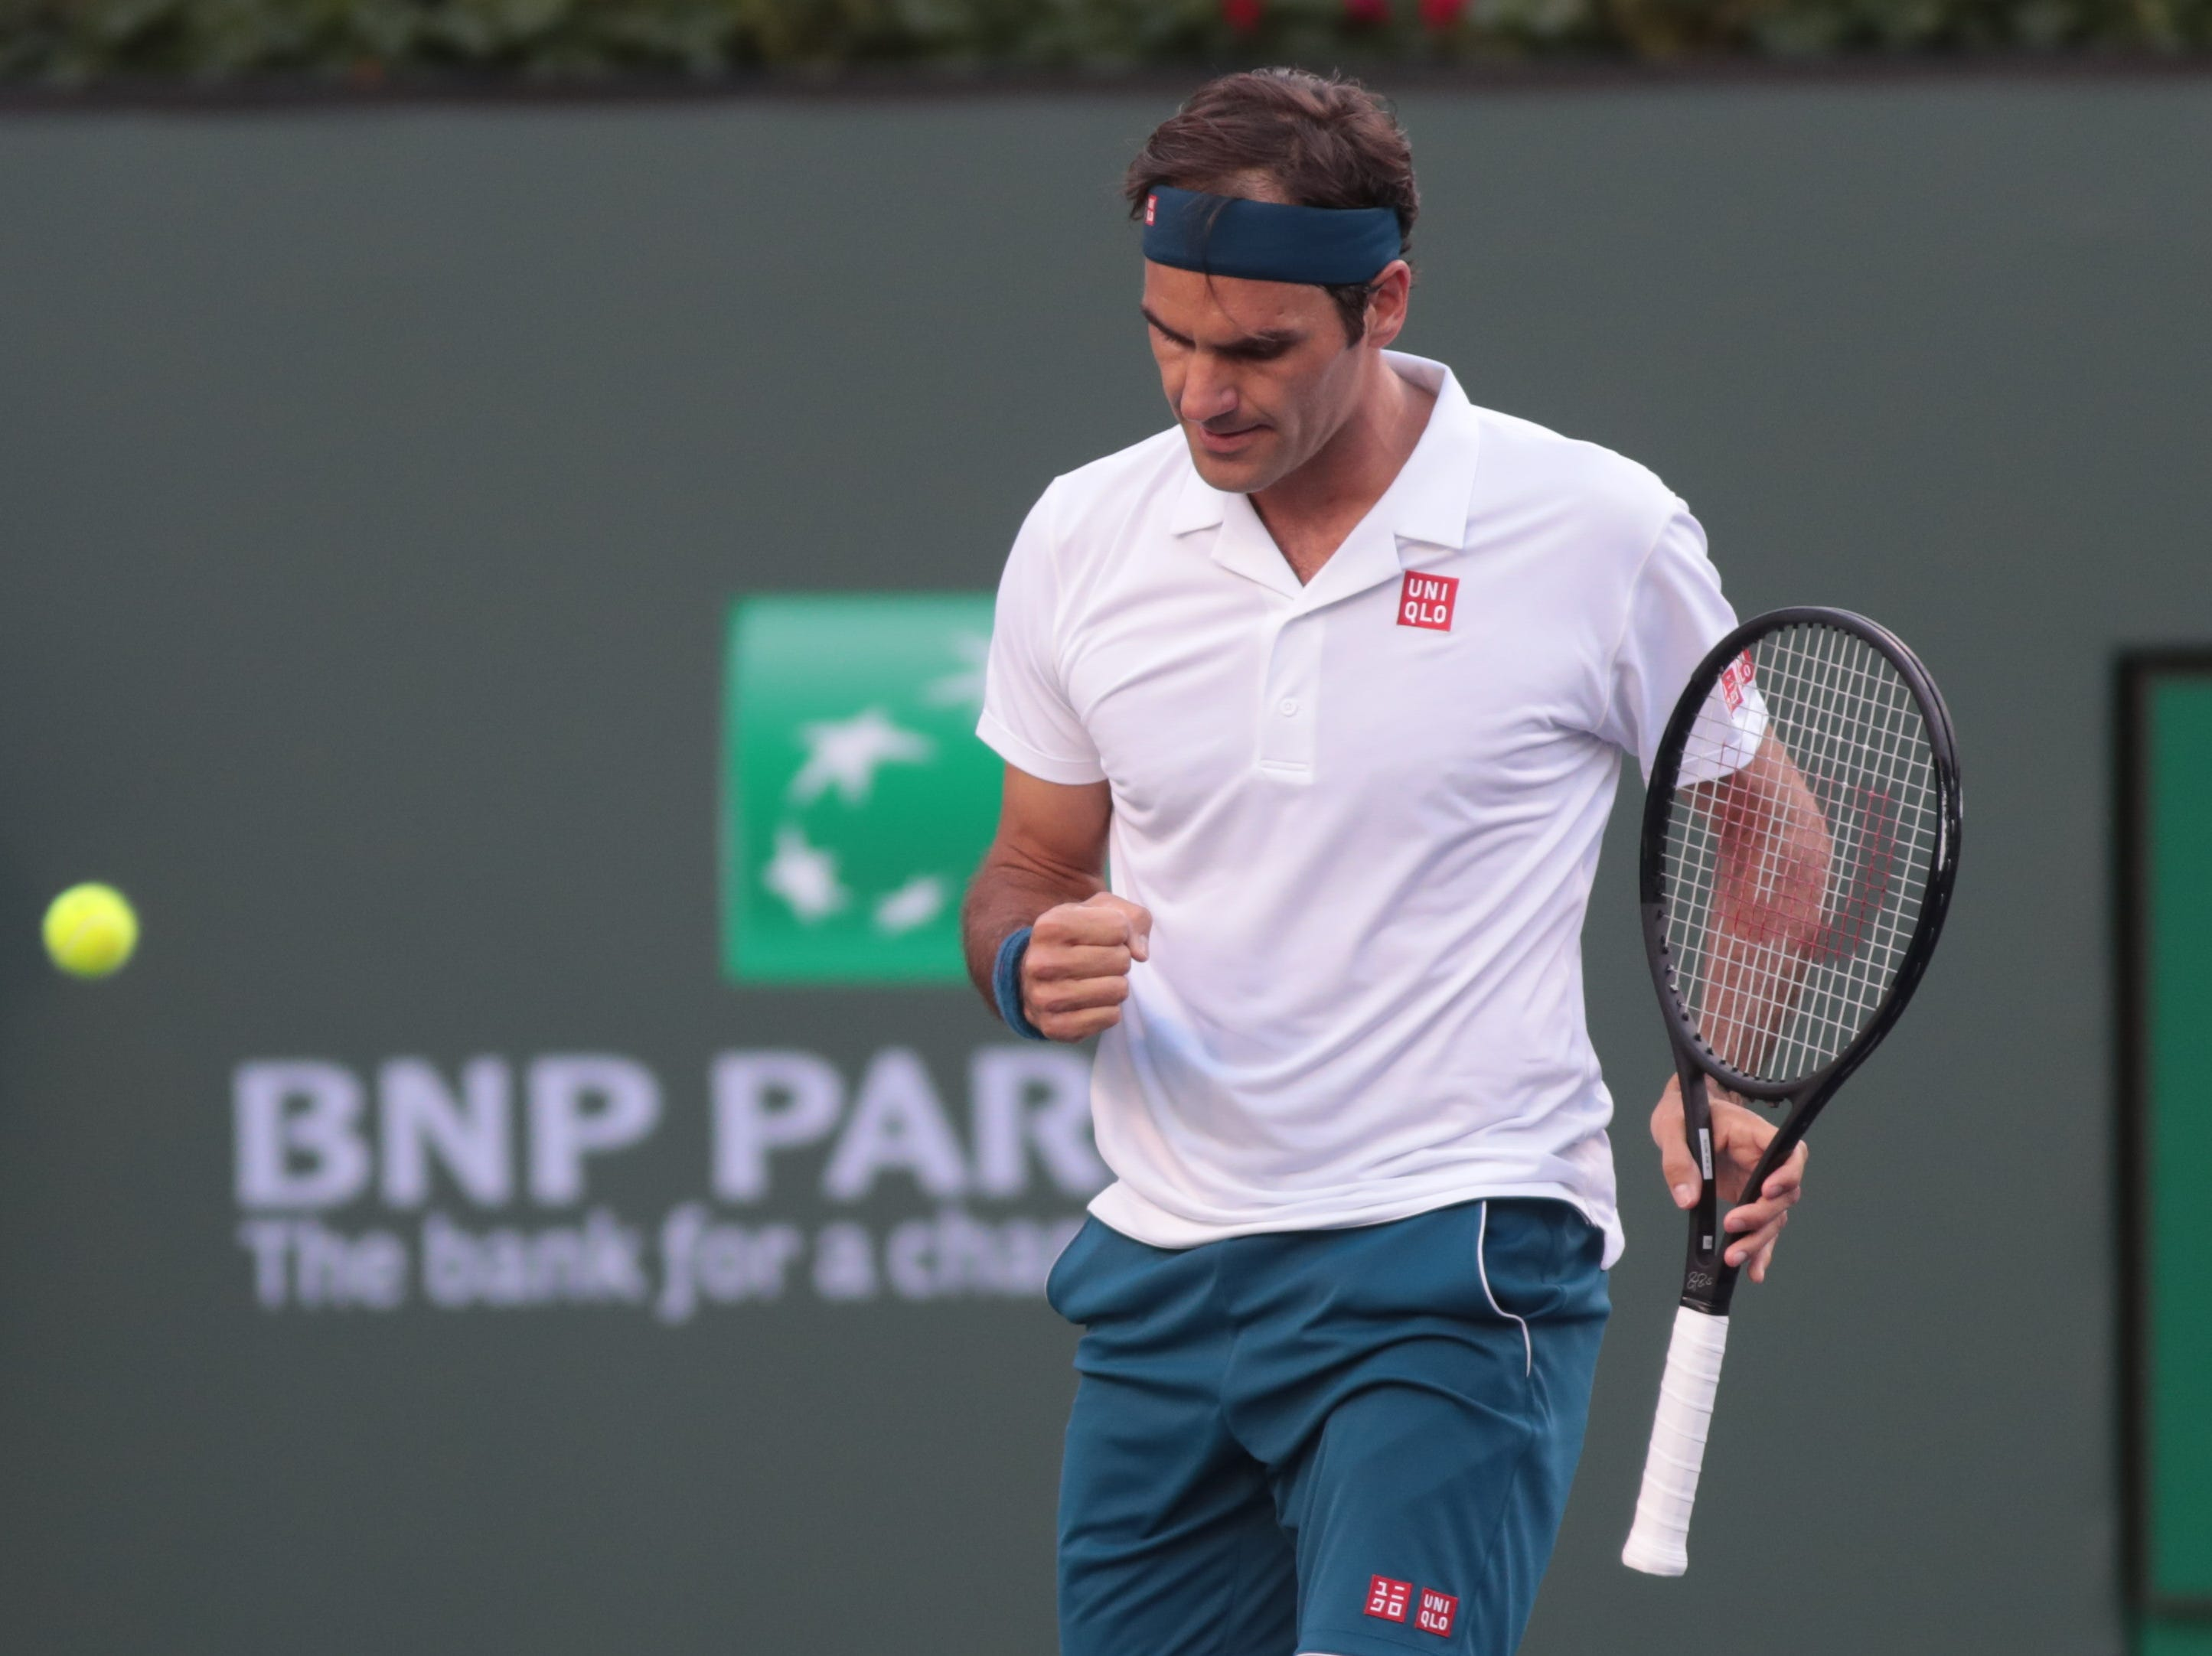 Roger Federer reacts to winning a point in the third set of the finals of the BNP Paribas Open in Indian Wells, Calif., March 17, 2019.